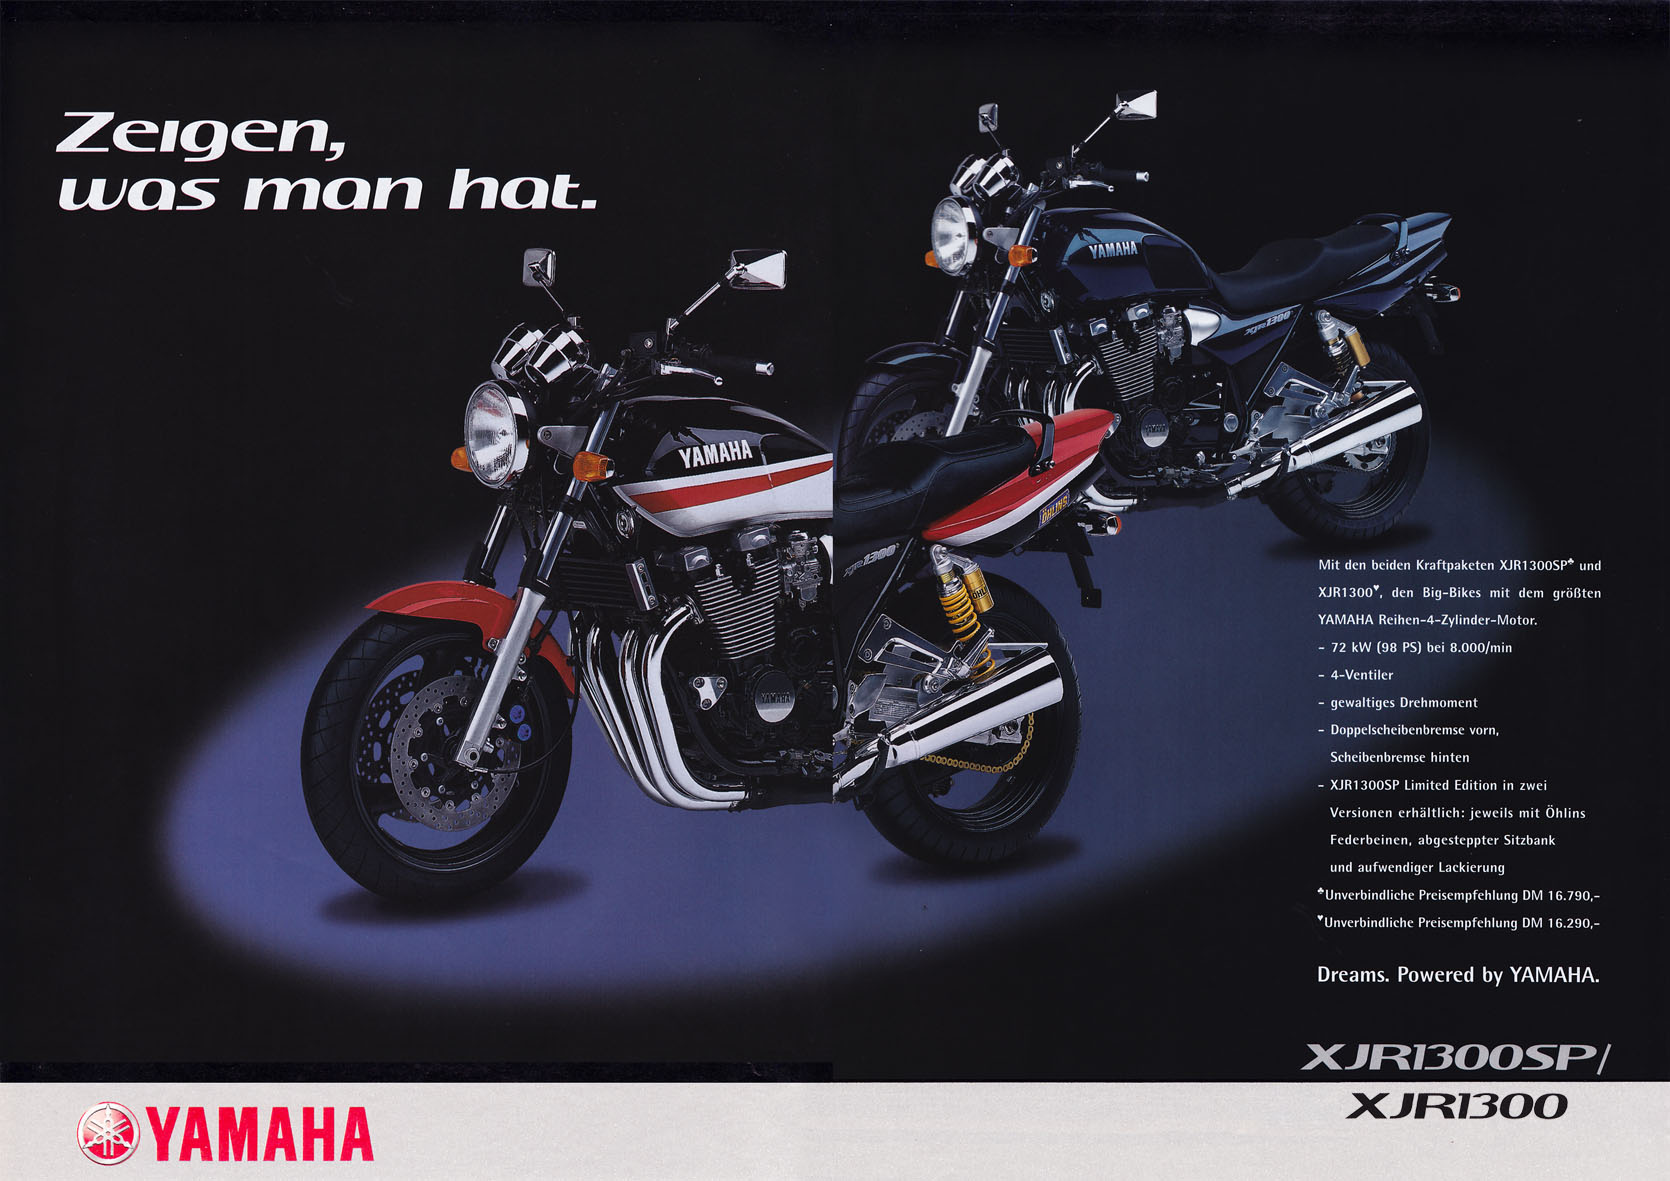 Yamaha Beileger - Zeigen, was man hat